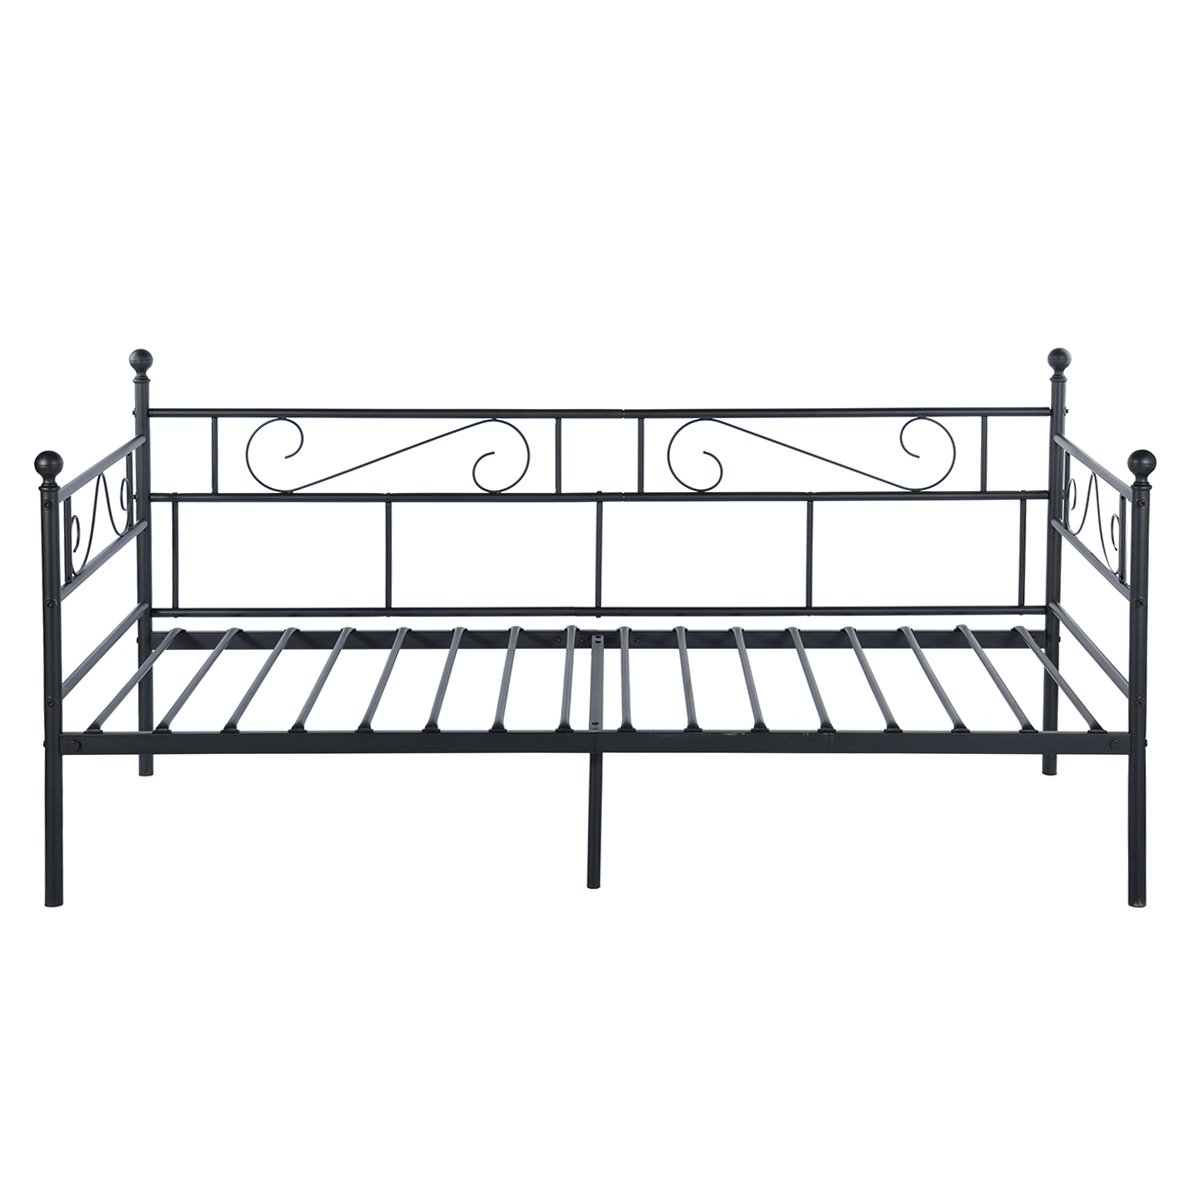 GreenForest Daybed Twin Bed Frame with Headboard and Stable Steel Slats Mattress Platform Base Boxspring Replacement Easy Assembly for Living Room Guest Room Black